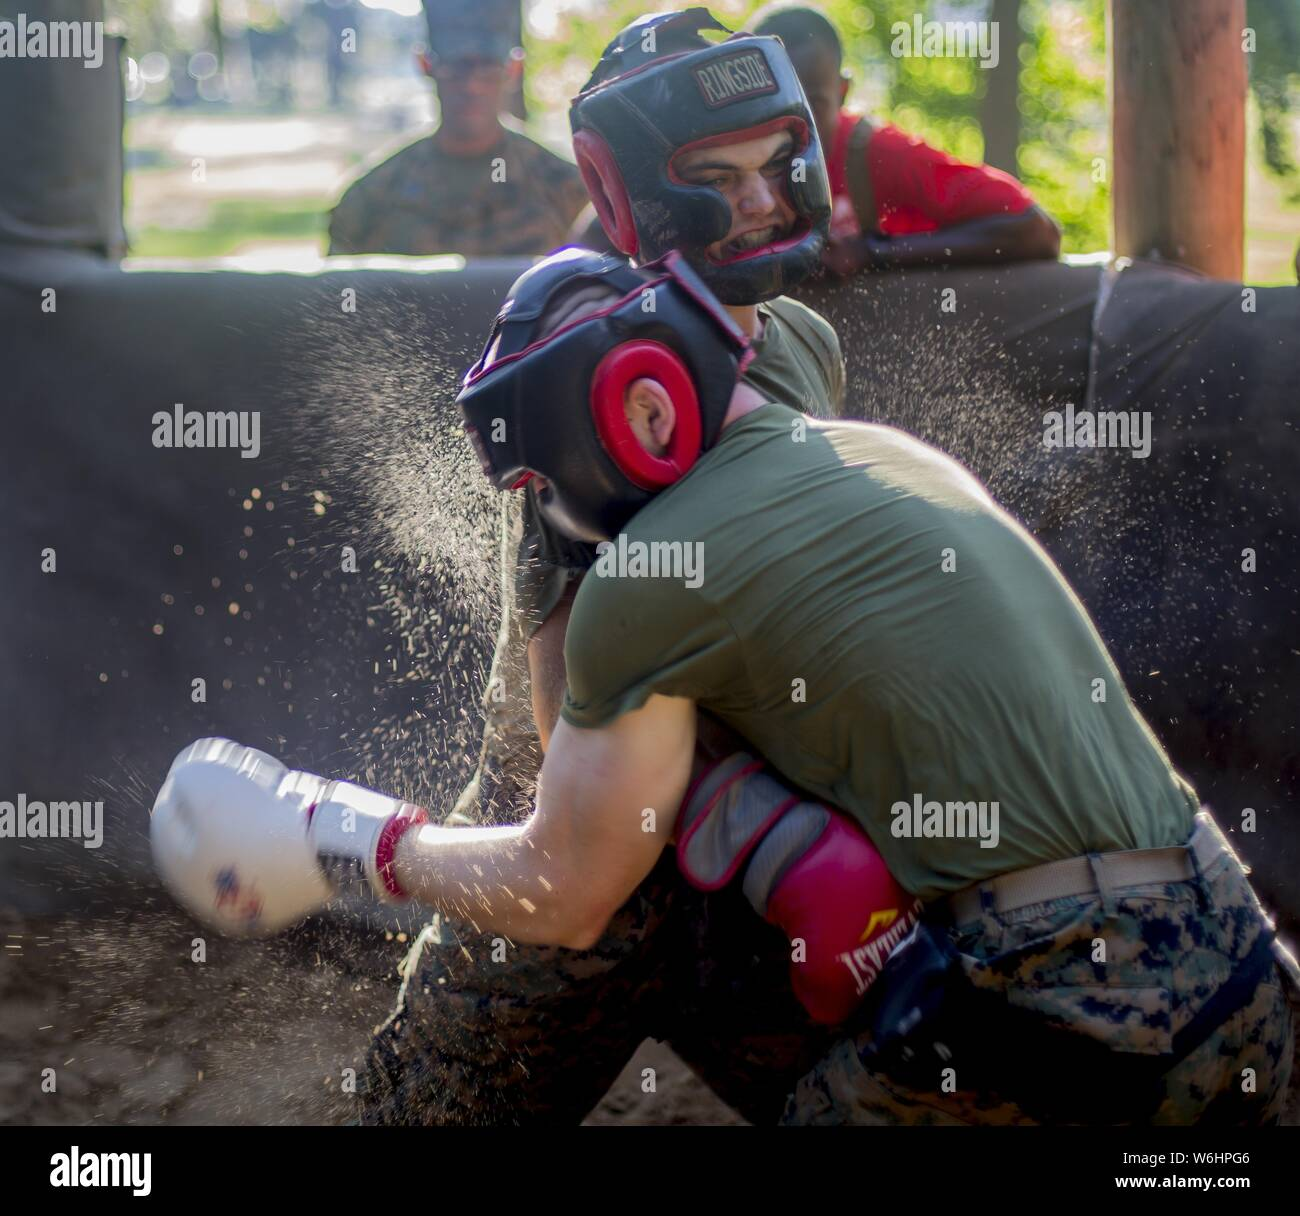 U.S. Marine Corps recruits with Delta Company, 1st Recruit Training Battalion, practice the fundamentals of body sparring at Marine Corps Recruit Depot Parris Island, South Carolina, July 25, 2019, July 25, 2019. Body sparring is an exercise that exemplifies the fundamentals of Marine Corps Martial Arts and forces recruits to overcome physical and mental fatigue. (U.S. Marine Corps photo by Lance Cpl. Dylan Walters). () Stock Photo